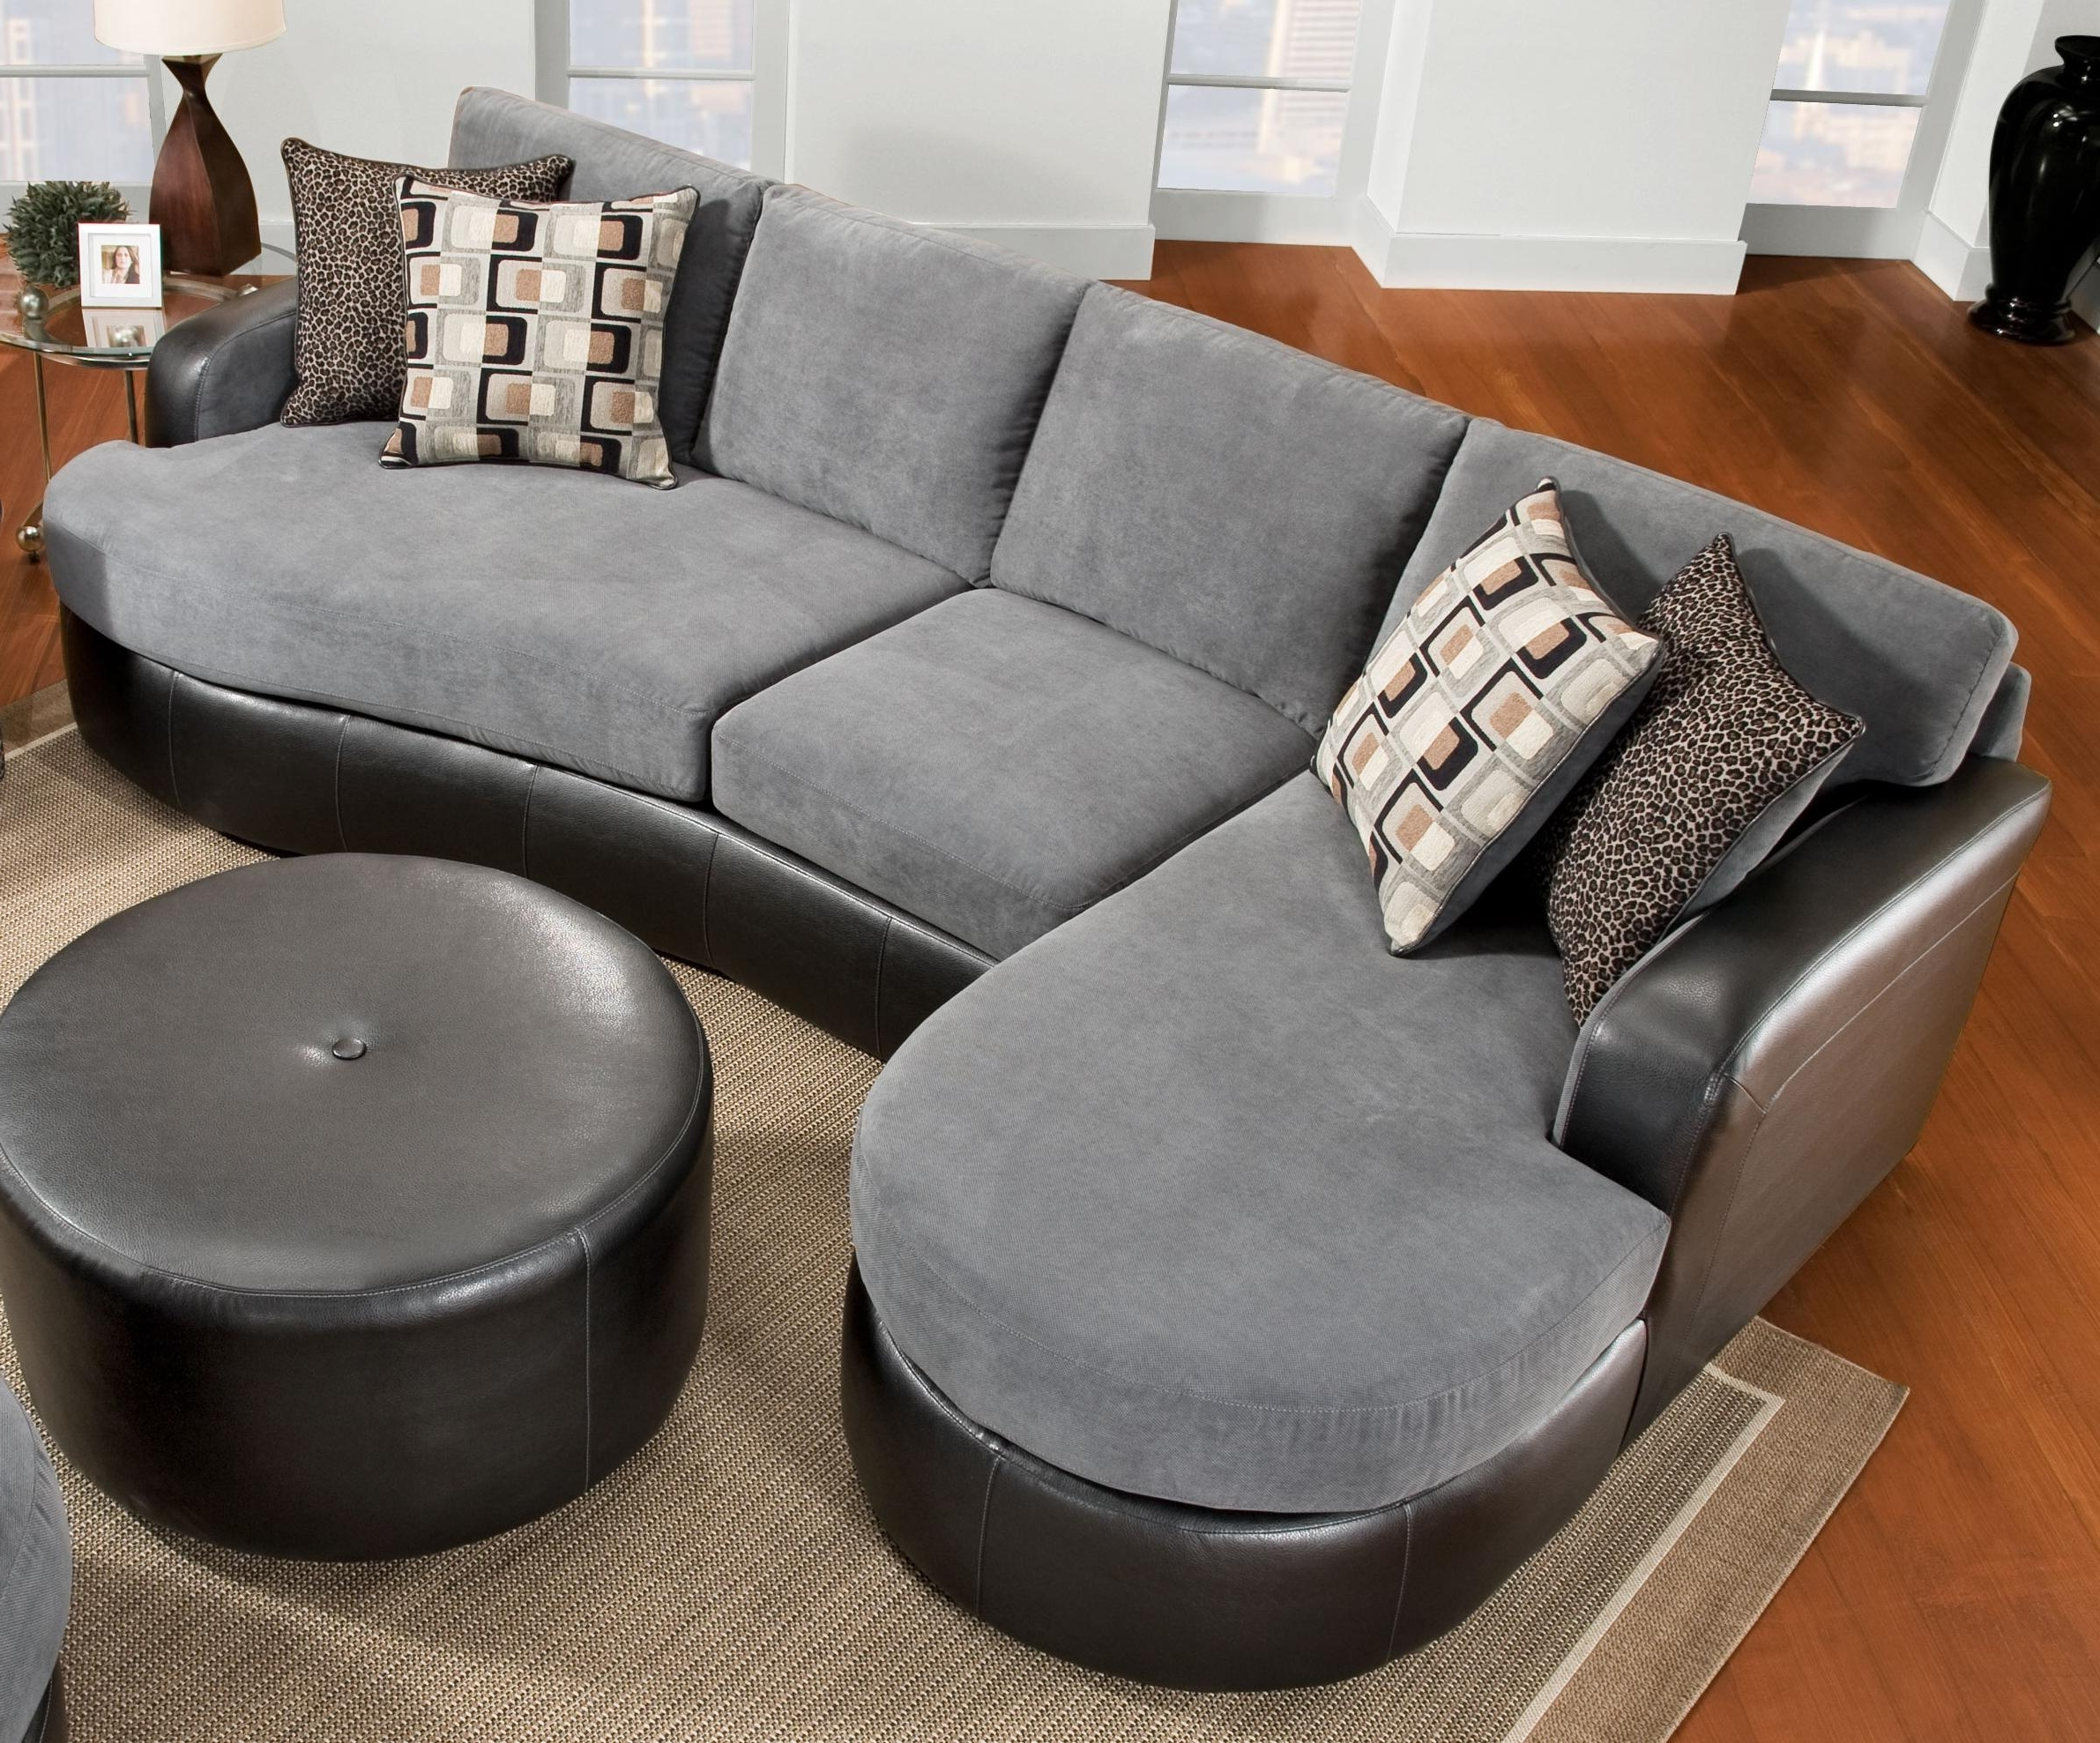 Elegant Sectional Sofas Throughout Most Recently Released Home Design : Dazzling Best Modern Fabric Sectional Sofas With (Gallery 20 of 20)